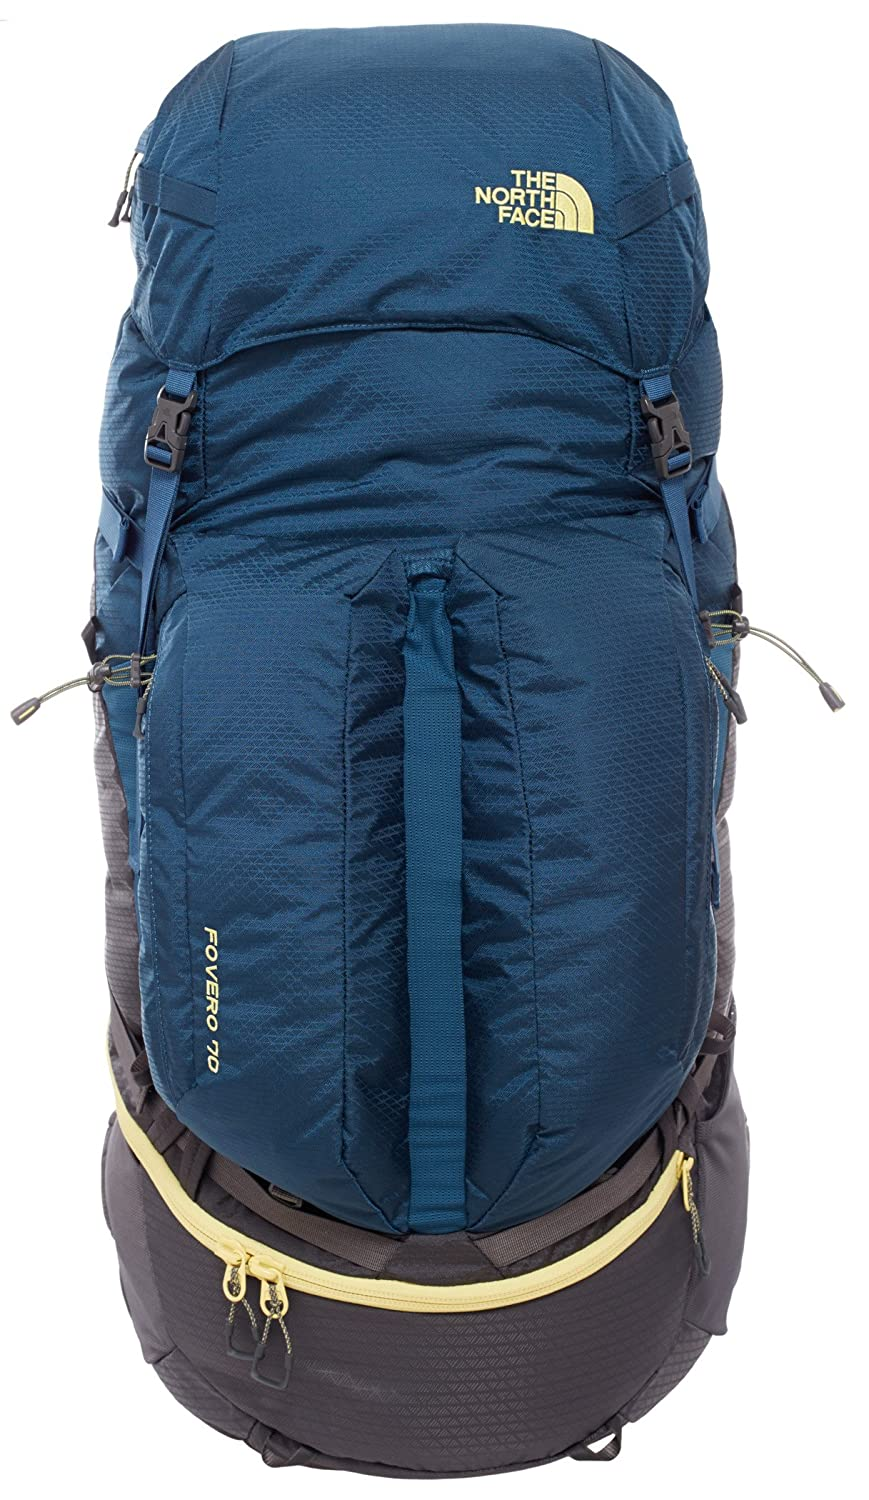 fe2992373 North Face Fovero 70 Hiking Backpack Small/Medium Monterey Blue ...